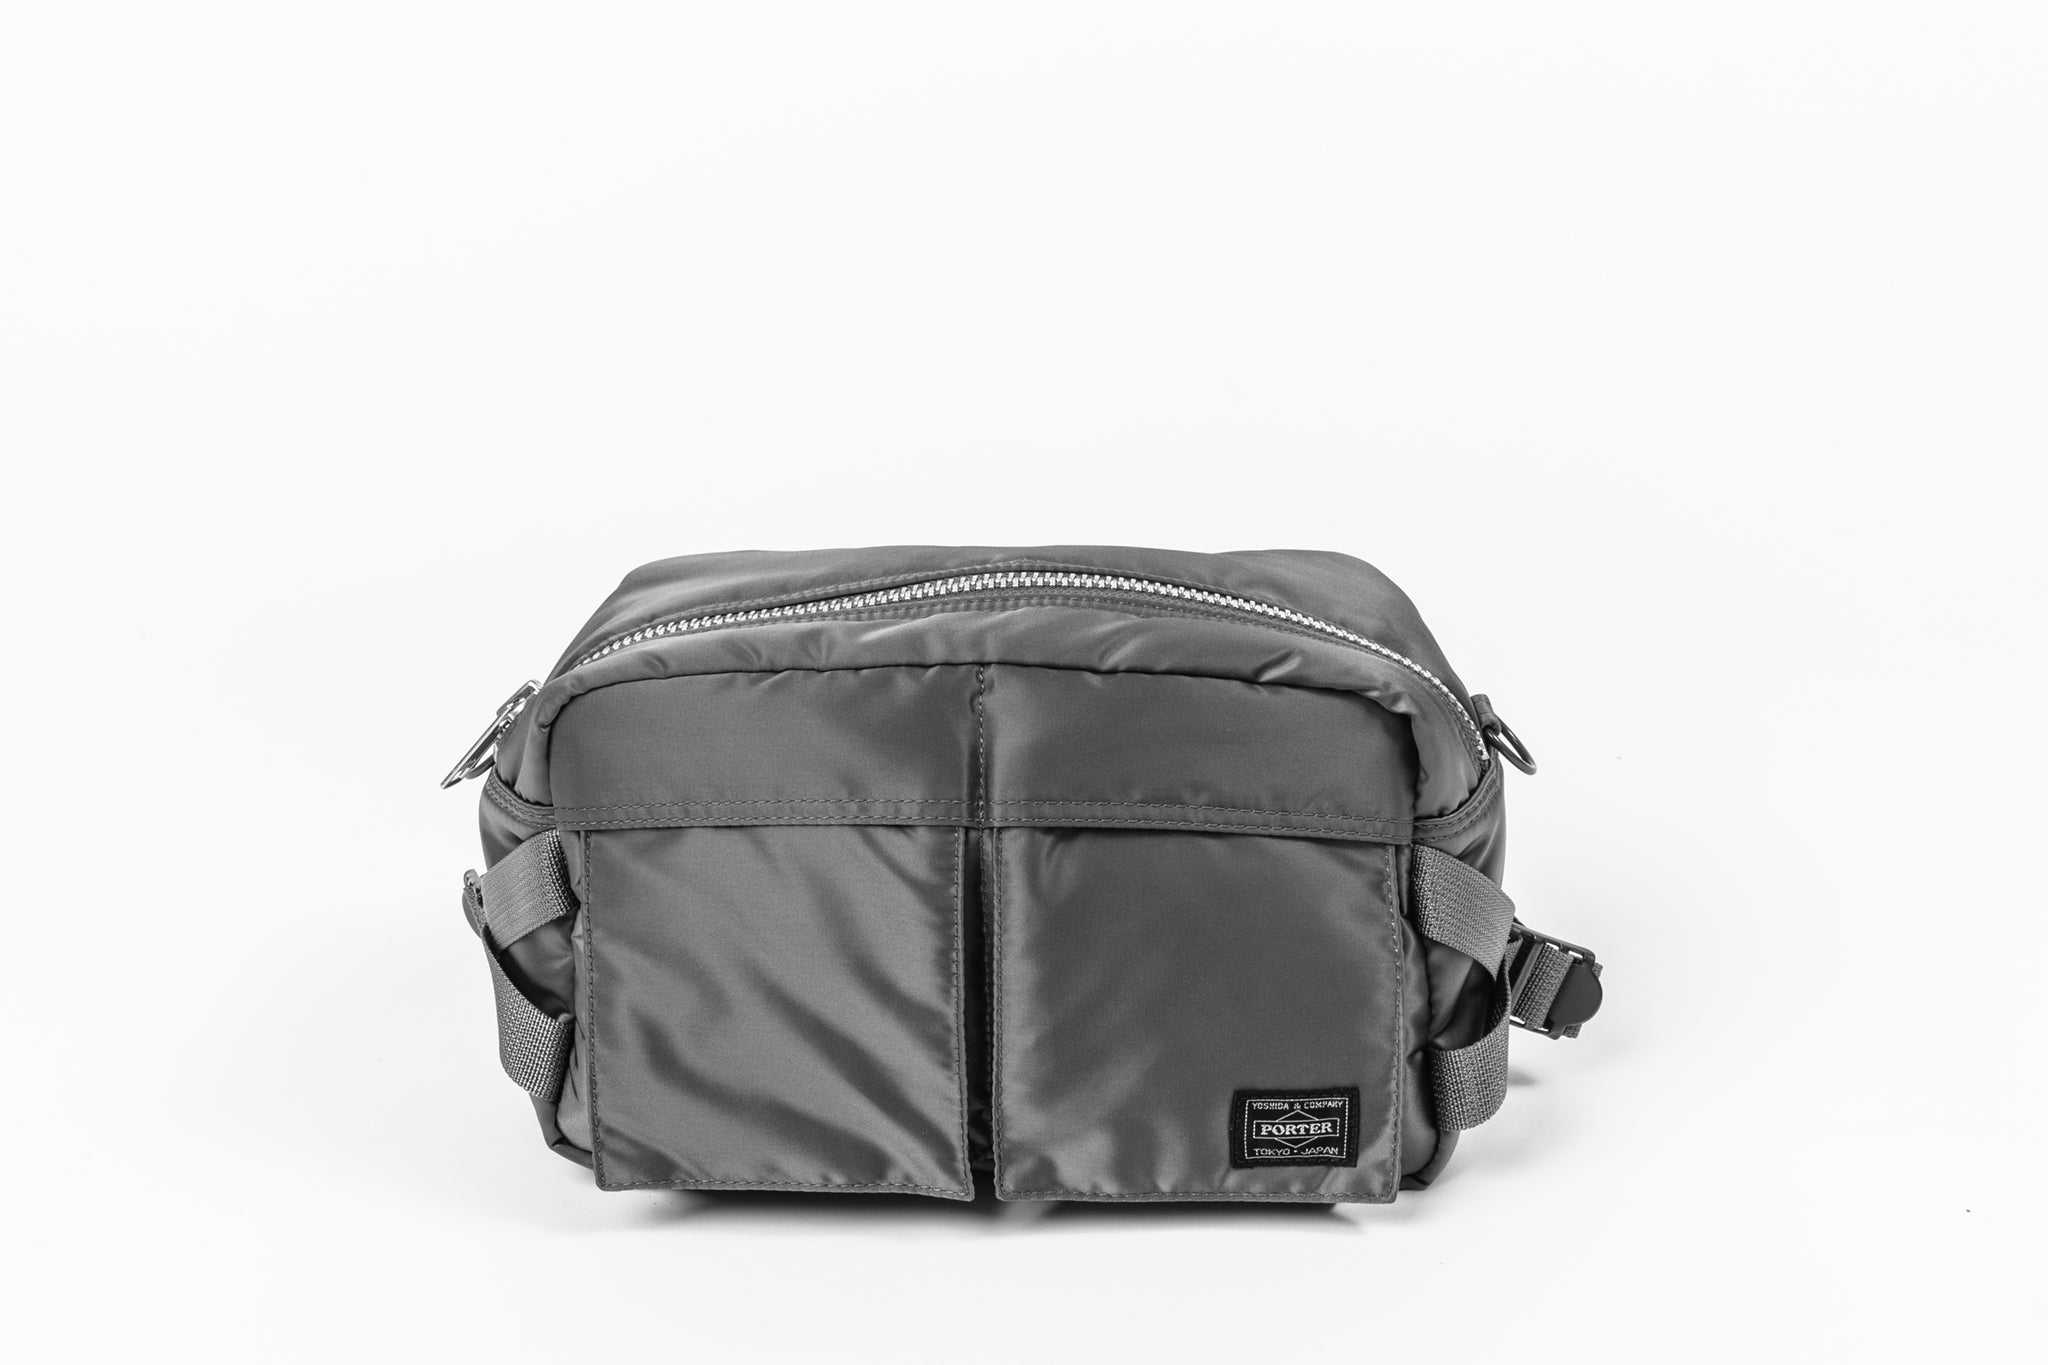 PORTER-YOSHIDA & CO TANKER 2WAY WAIST BAG